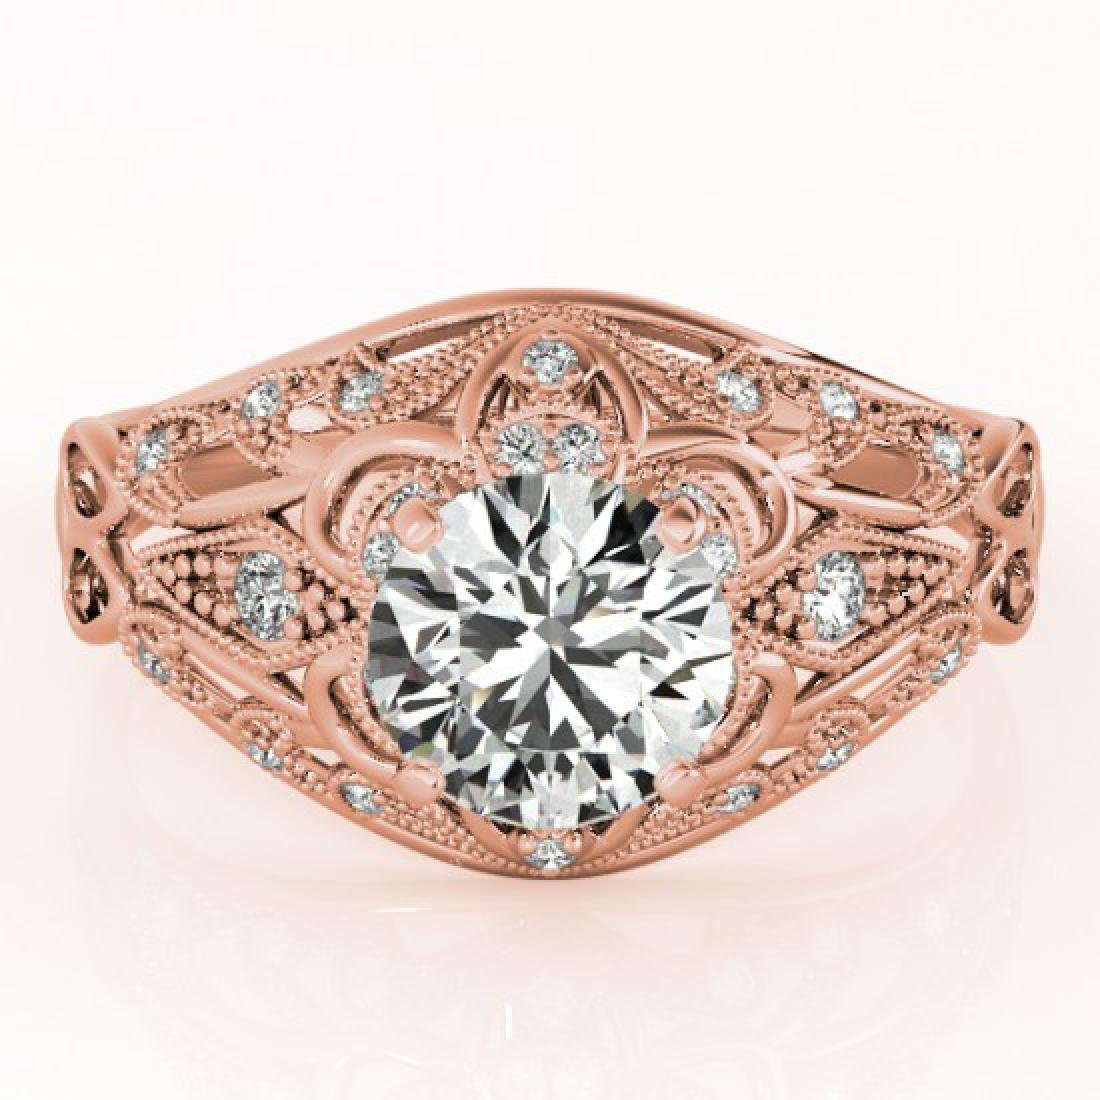 1.36 CTW Certified VS/SI Diamond Solitaire Antique Ring